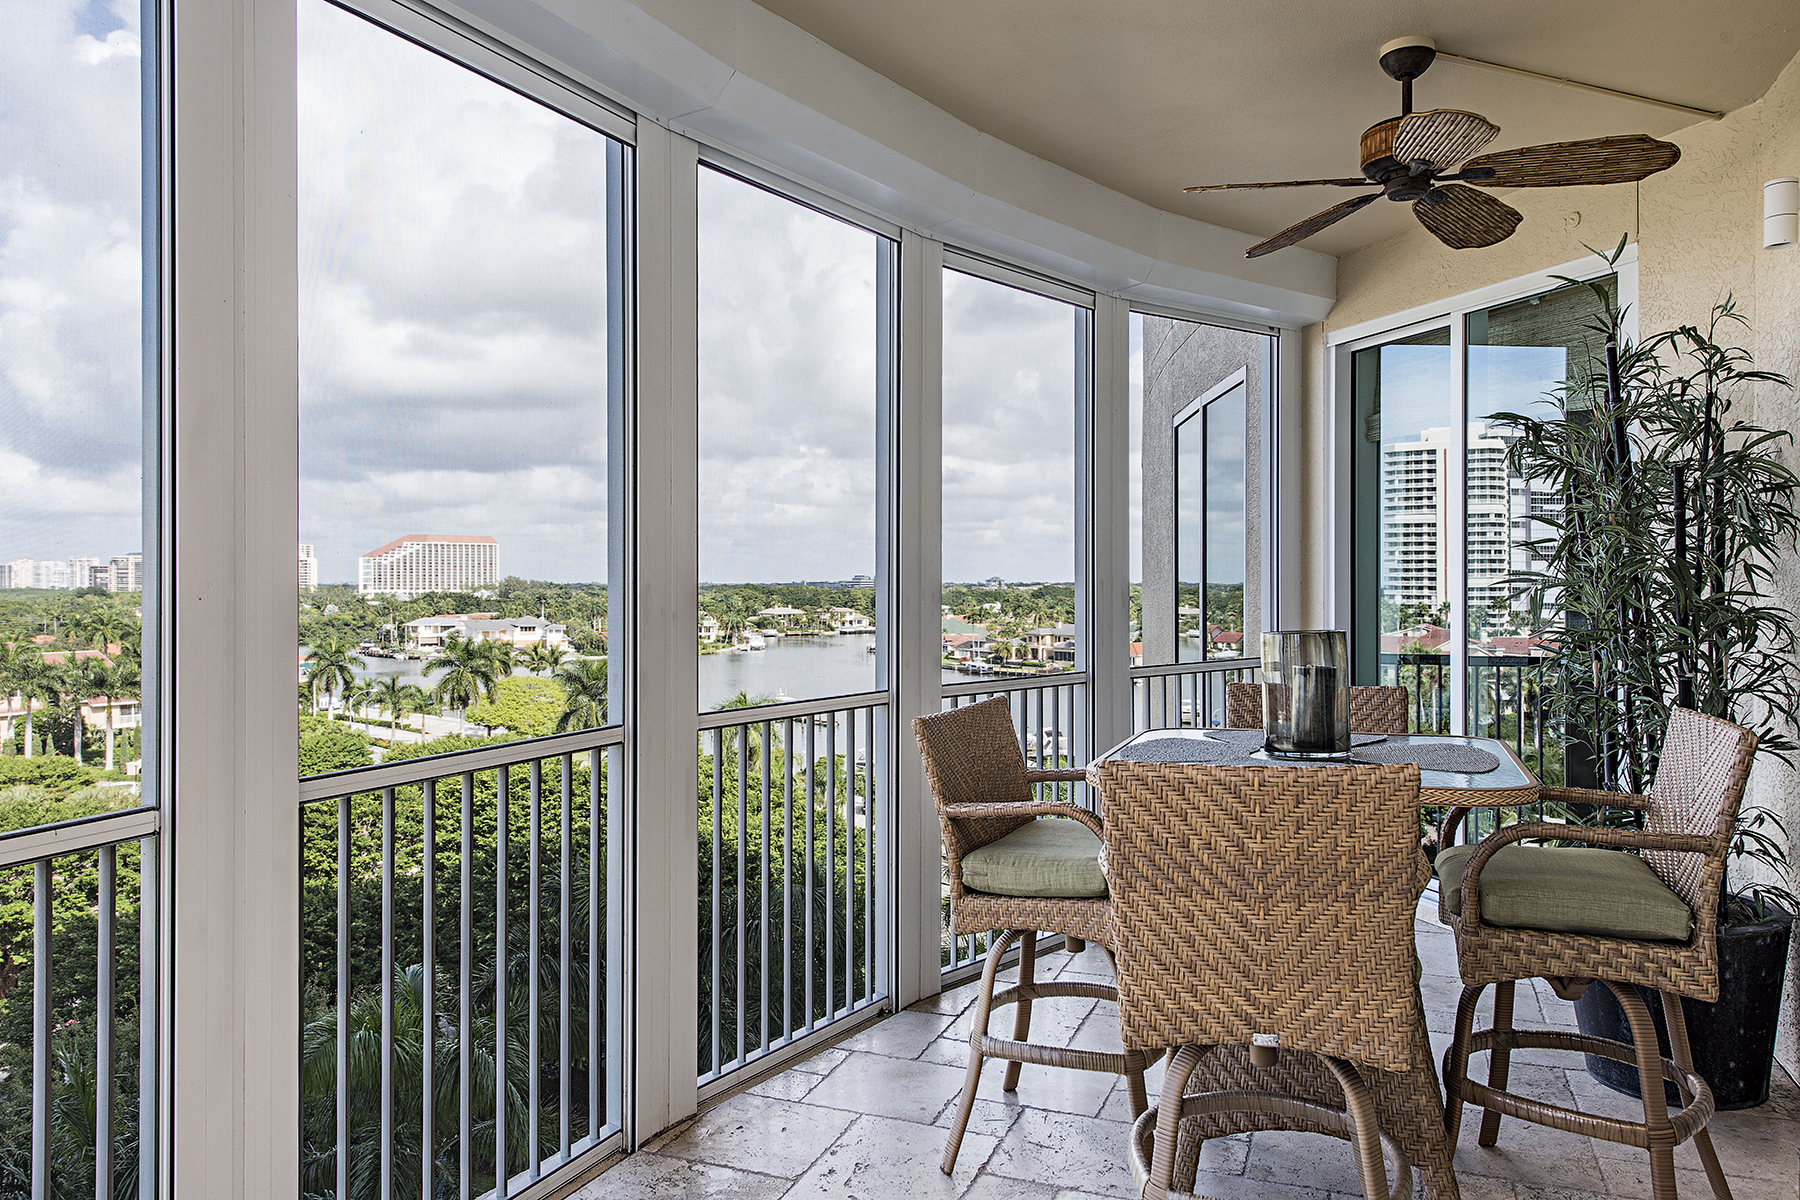 Additional photo for property listing at PARK SHORE - ARIA 4501  Gulf Shore Blvd  N 704,  Naples, Florida 34103 United States